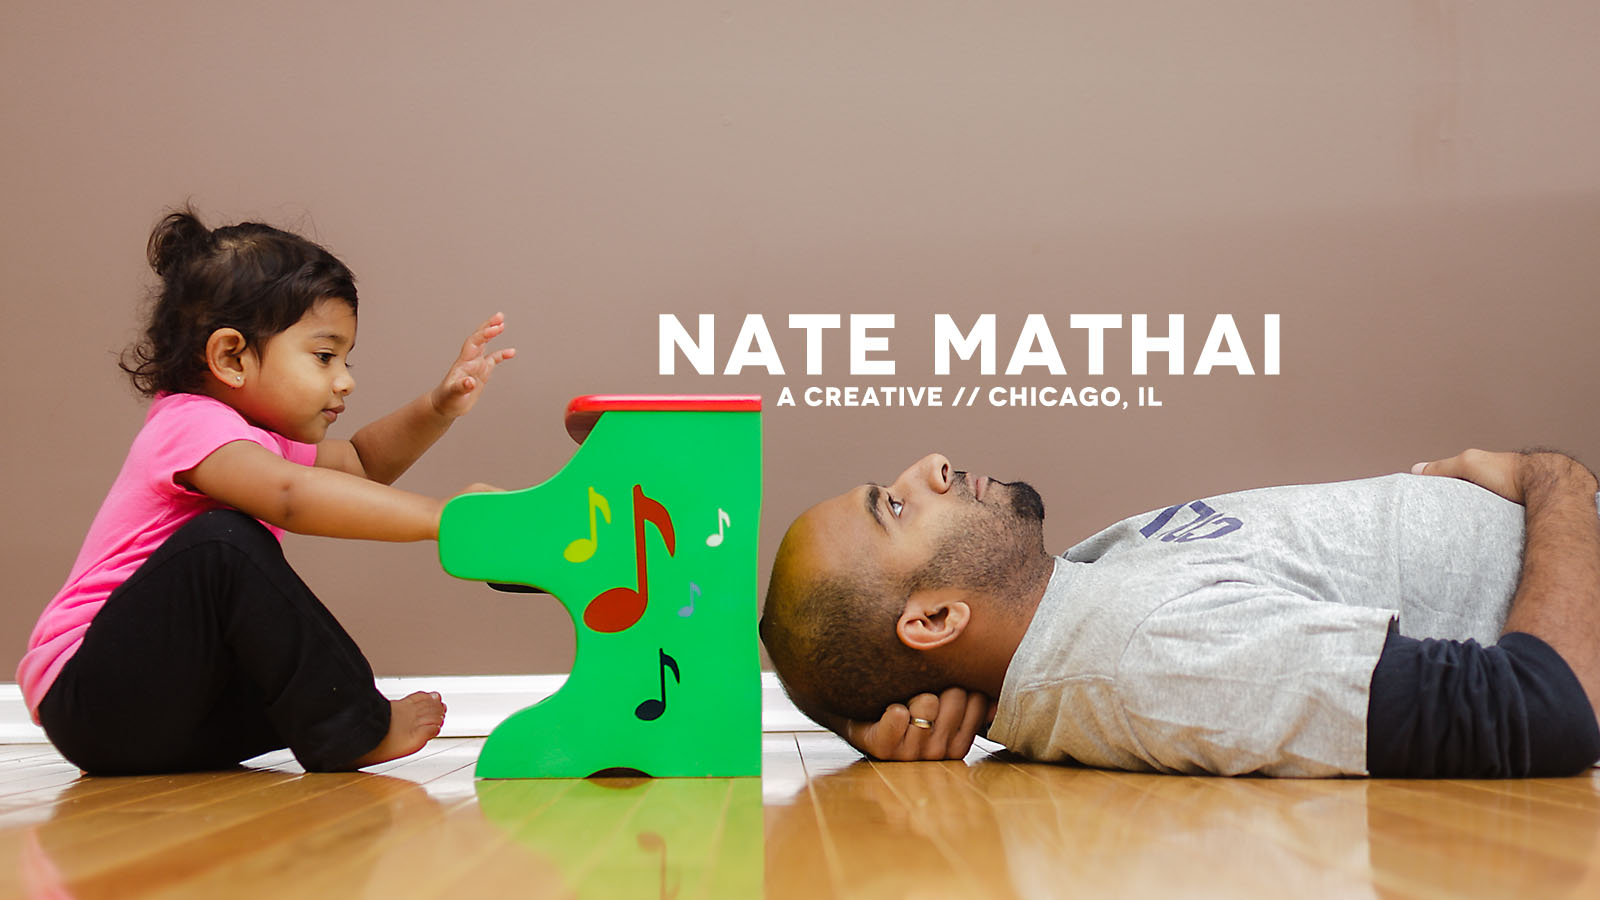 top image for Who Would Shoot Me… (Jerry G) by chicago wedding photographer nate mathai